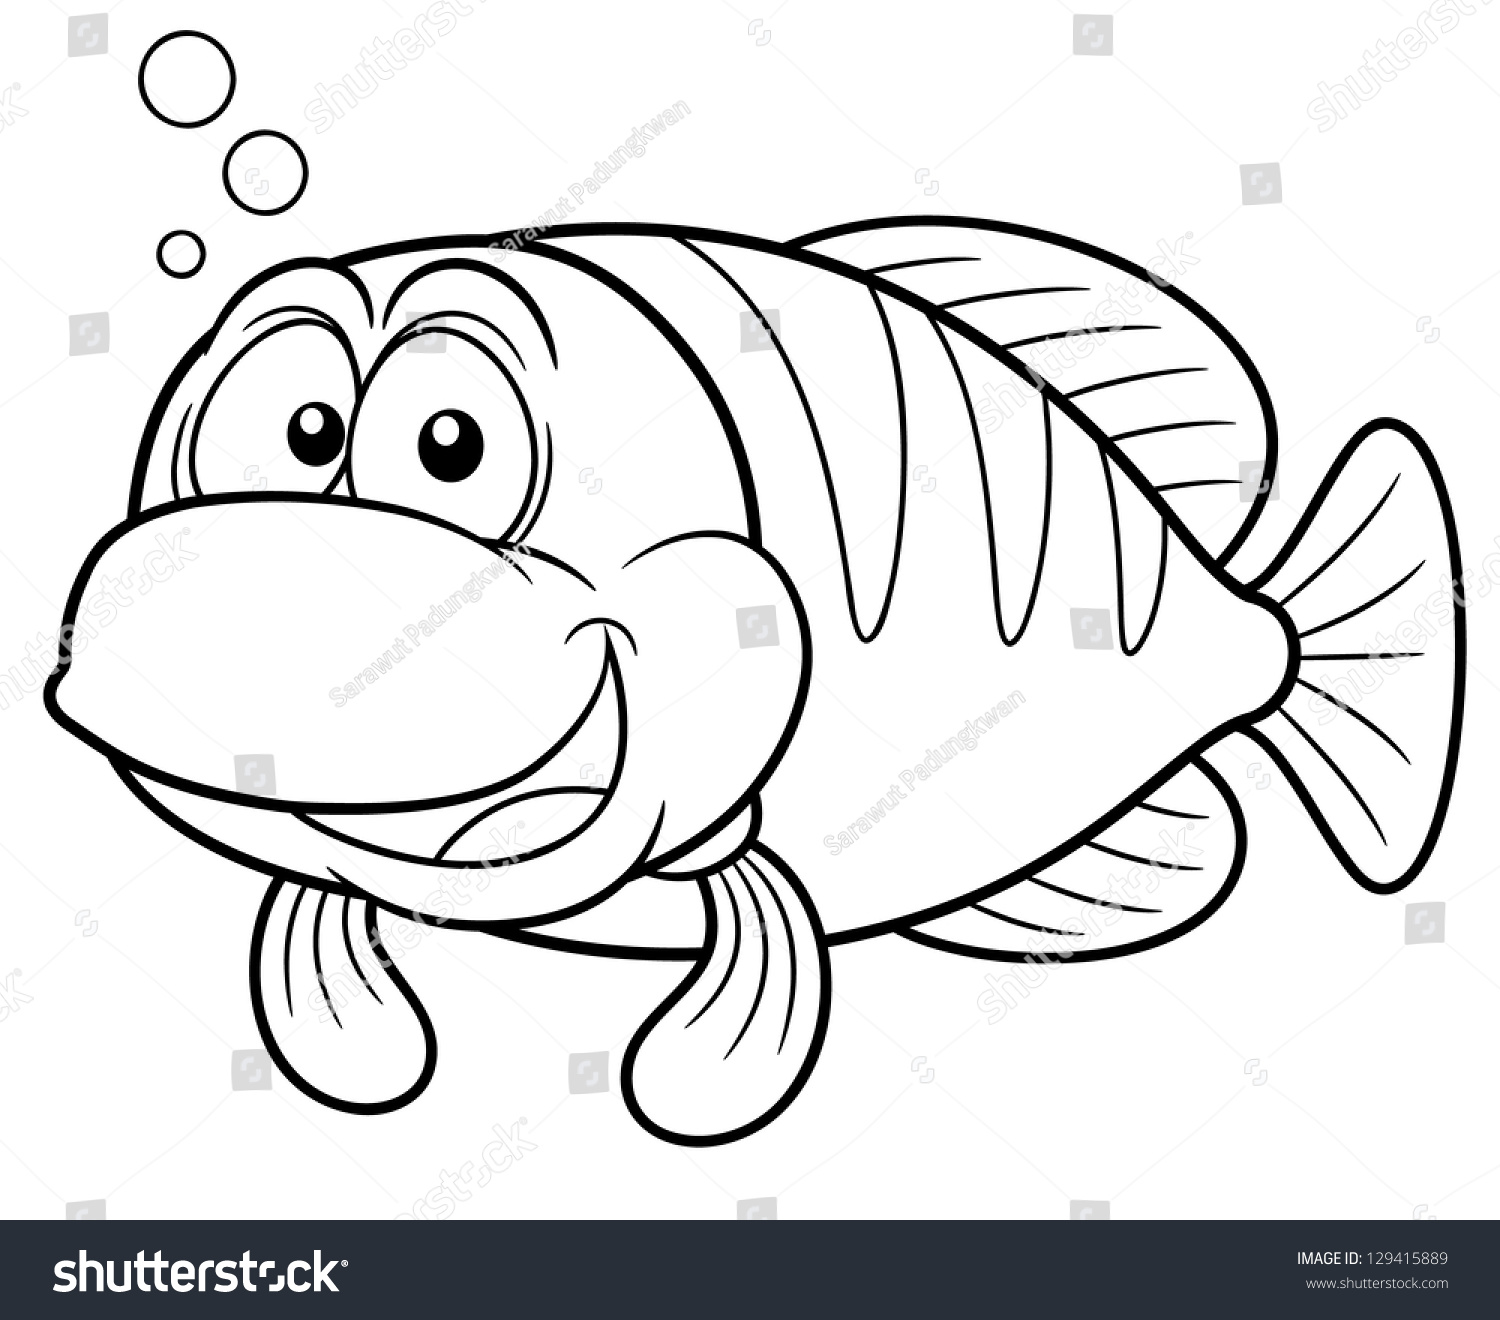 Vector Illustration Cartoon Fish Coloring Book Stock